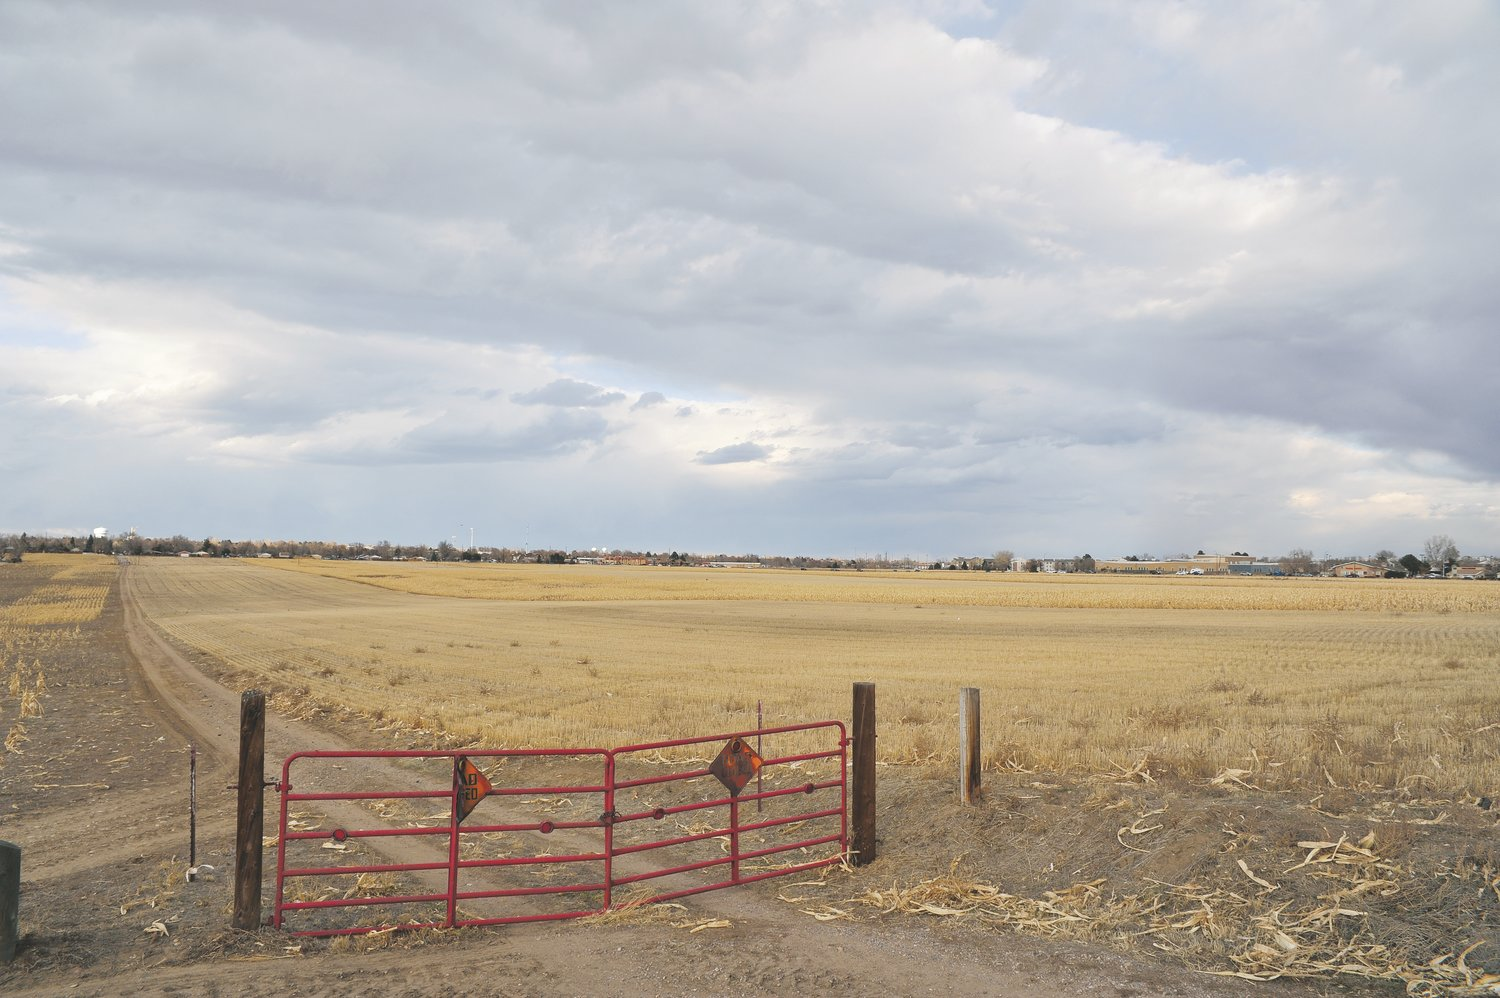 A view of the Pillar of Fire farm site in Westminster from Nov. 16. Numerous homes and retail shops have been proposed for this 236-acre parcel, located near Federal Blvd. and 84th Avenue.